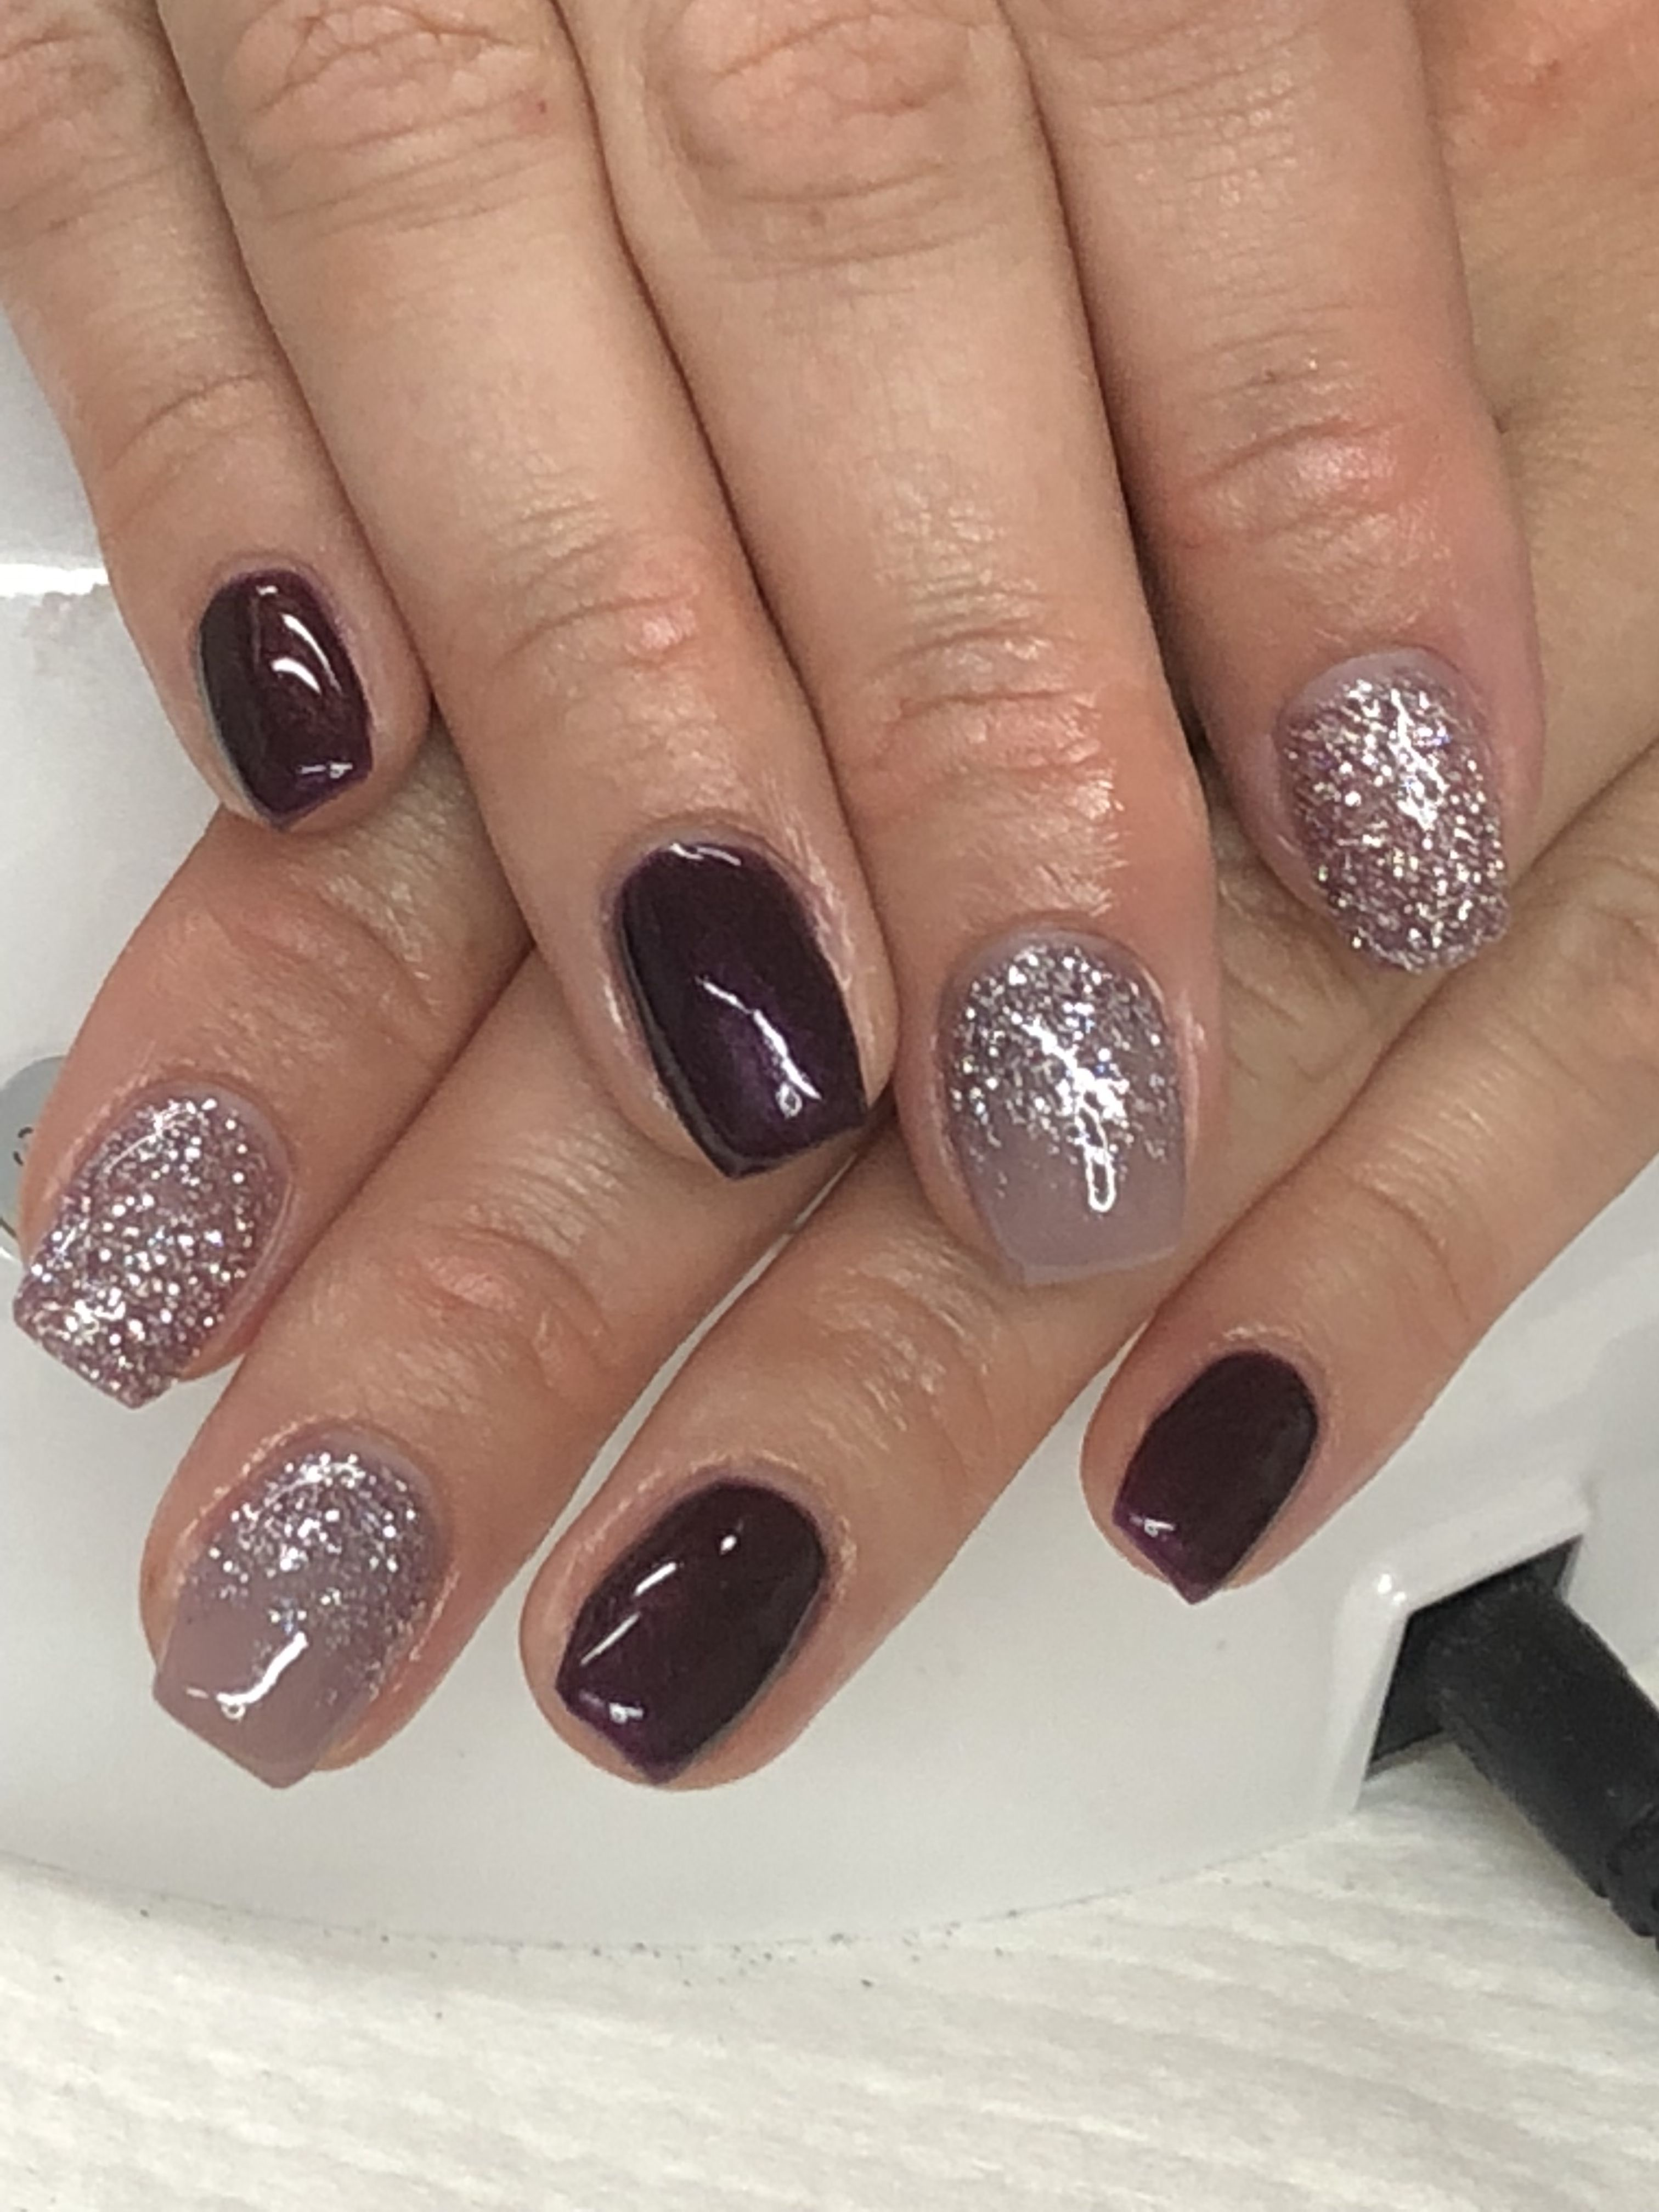 Fall Black Cherry Taupe Glitter Ombre Gel Nails Light Elegance Main Attraction Come One Come All Raise Your Glass Nails Gel Nail Designs Fingernails